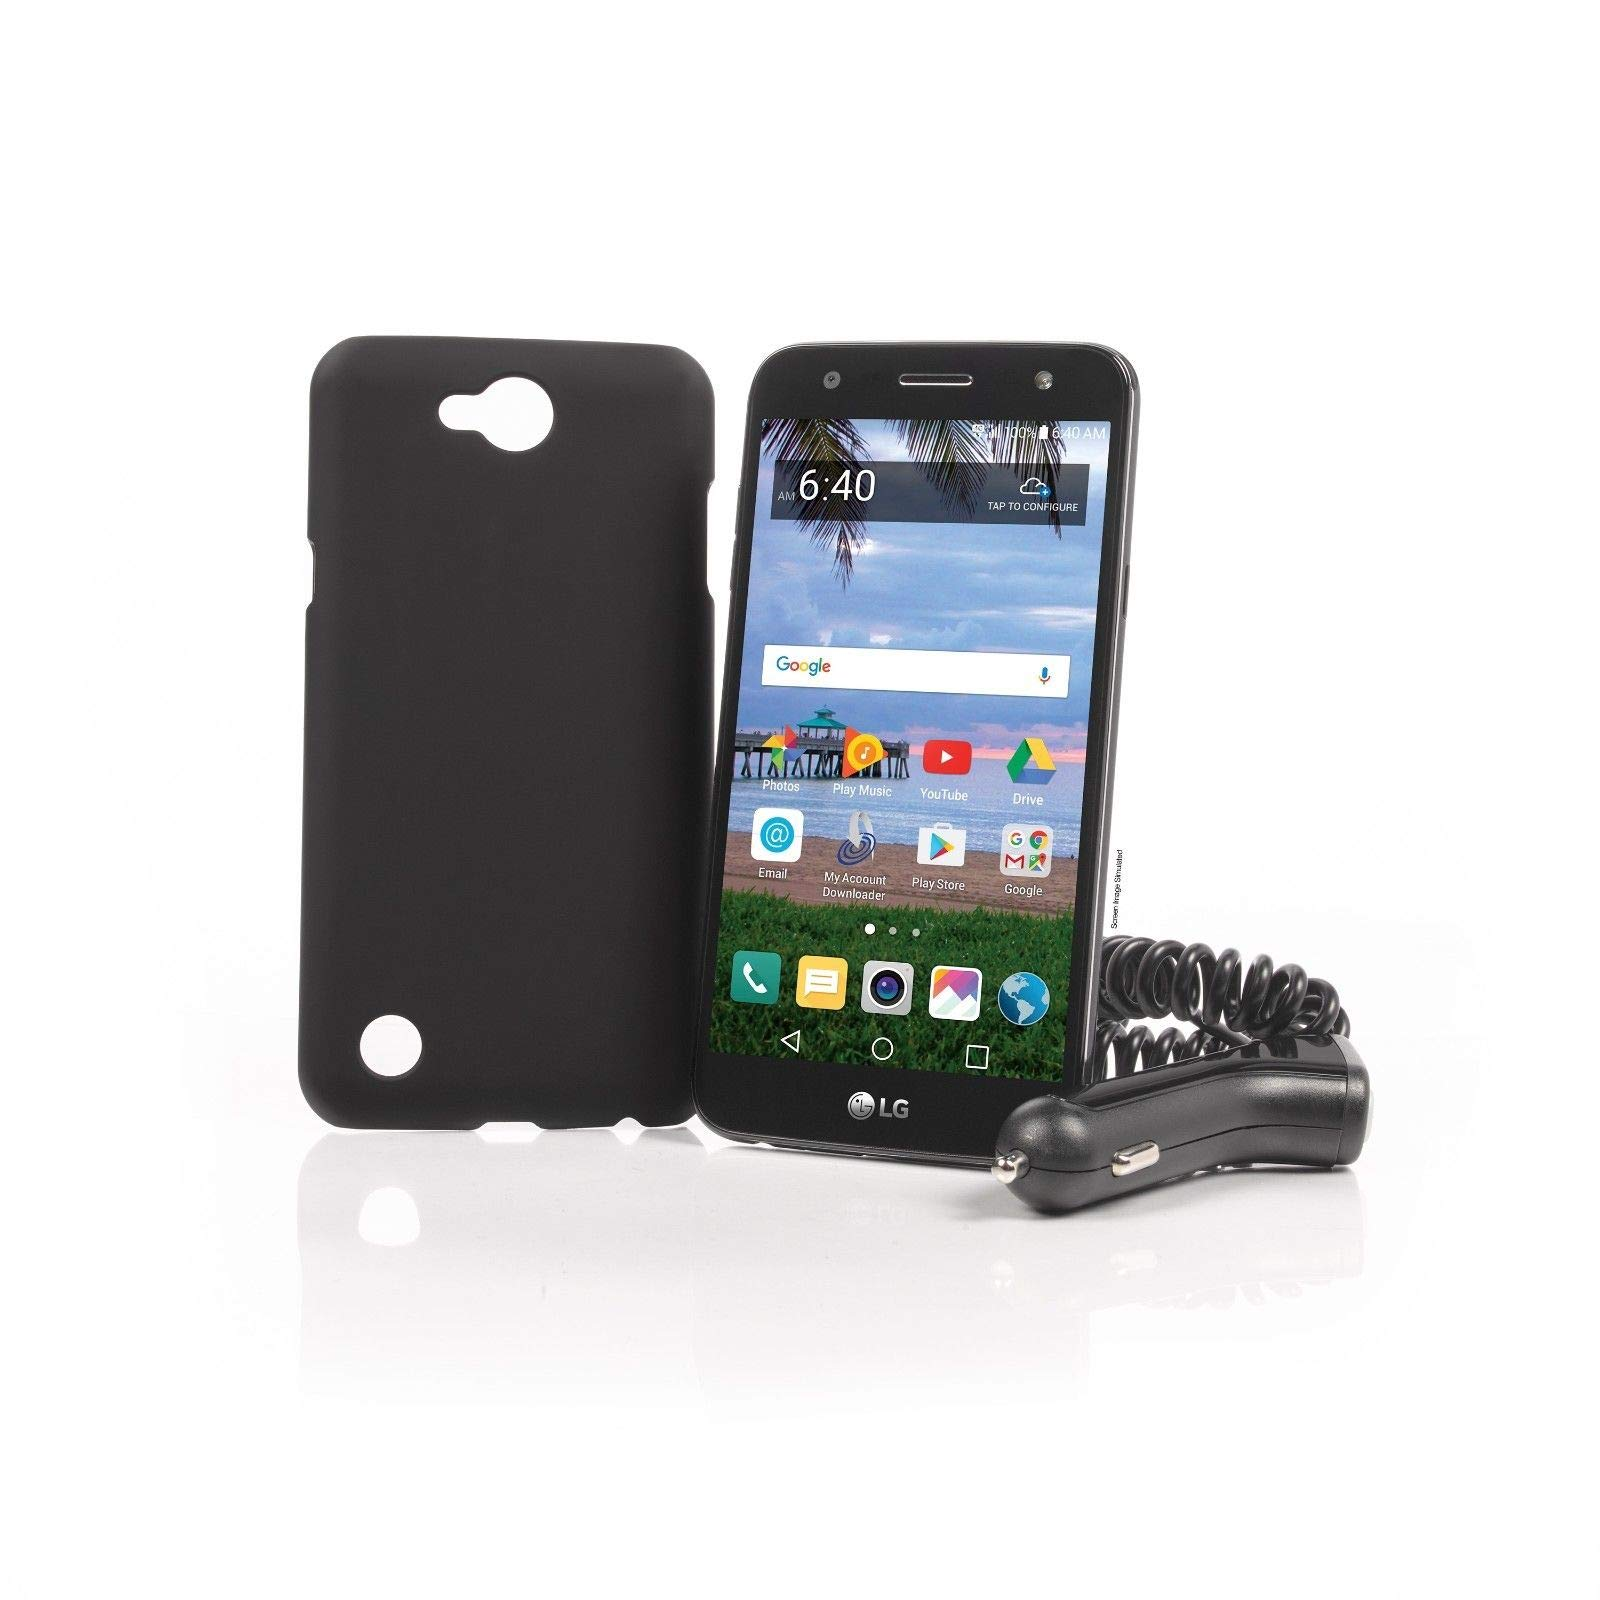 Tracfone LG Fiesta 2 Phone + 1 Year of Service with 1200 MIN/1200 Text/1200MB